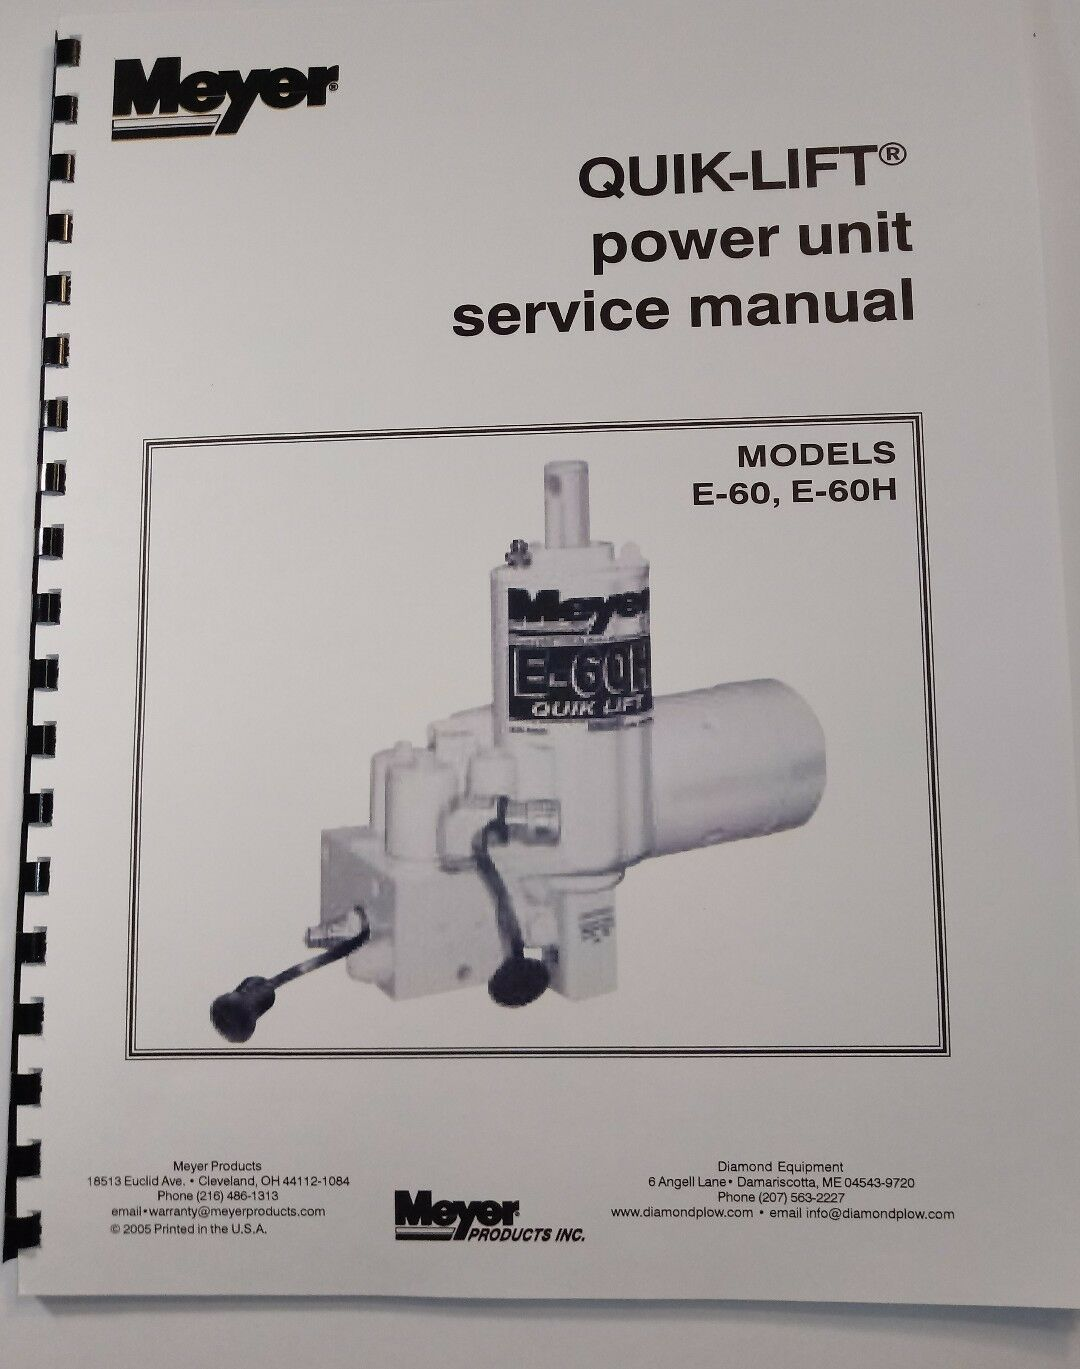 Meyer Snow Plow Pump Service Manual E60 H Models Full Color E58h Wiring Diagram Comb Bound 1 Of 4free Shipping